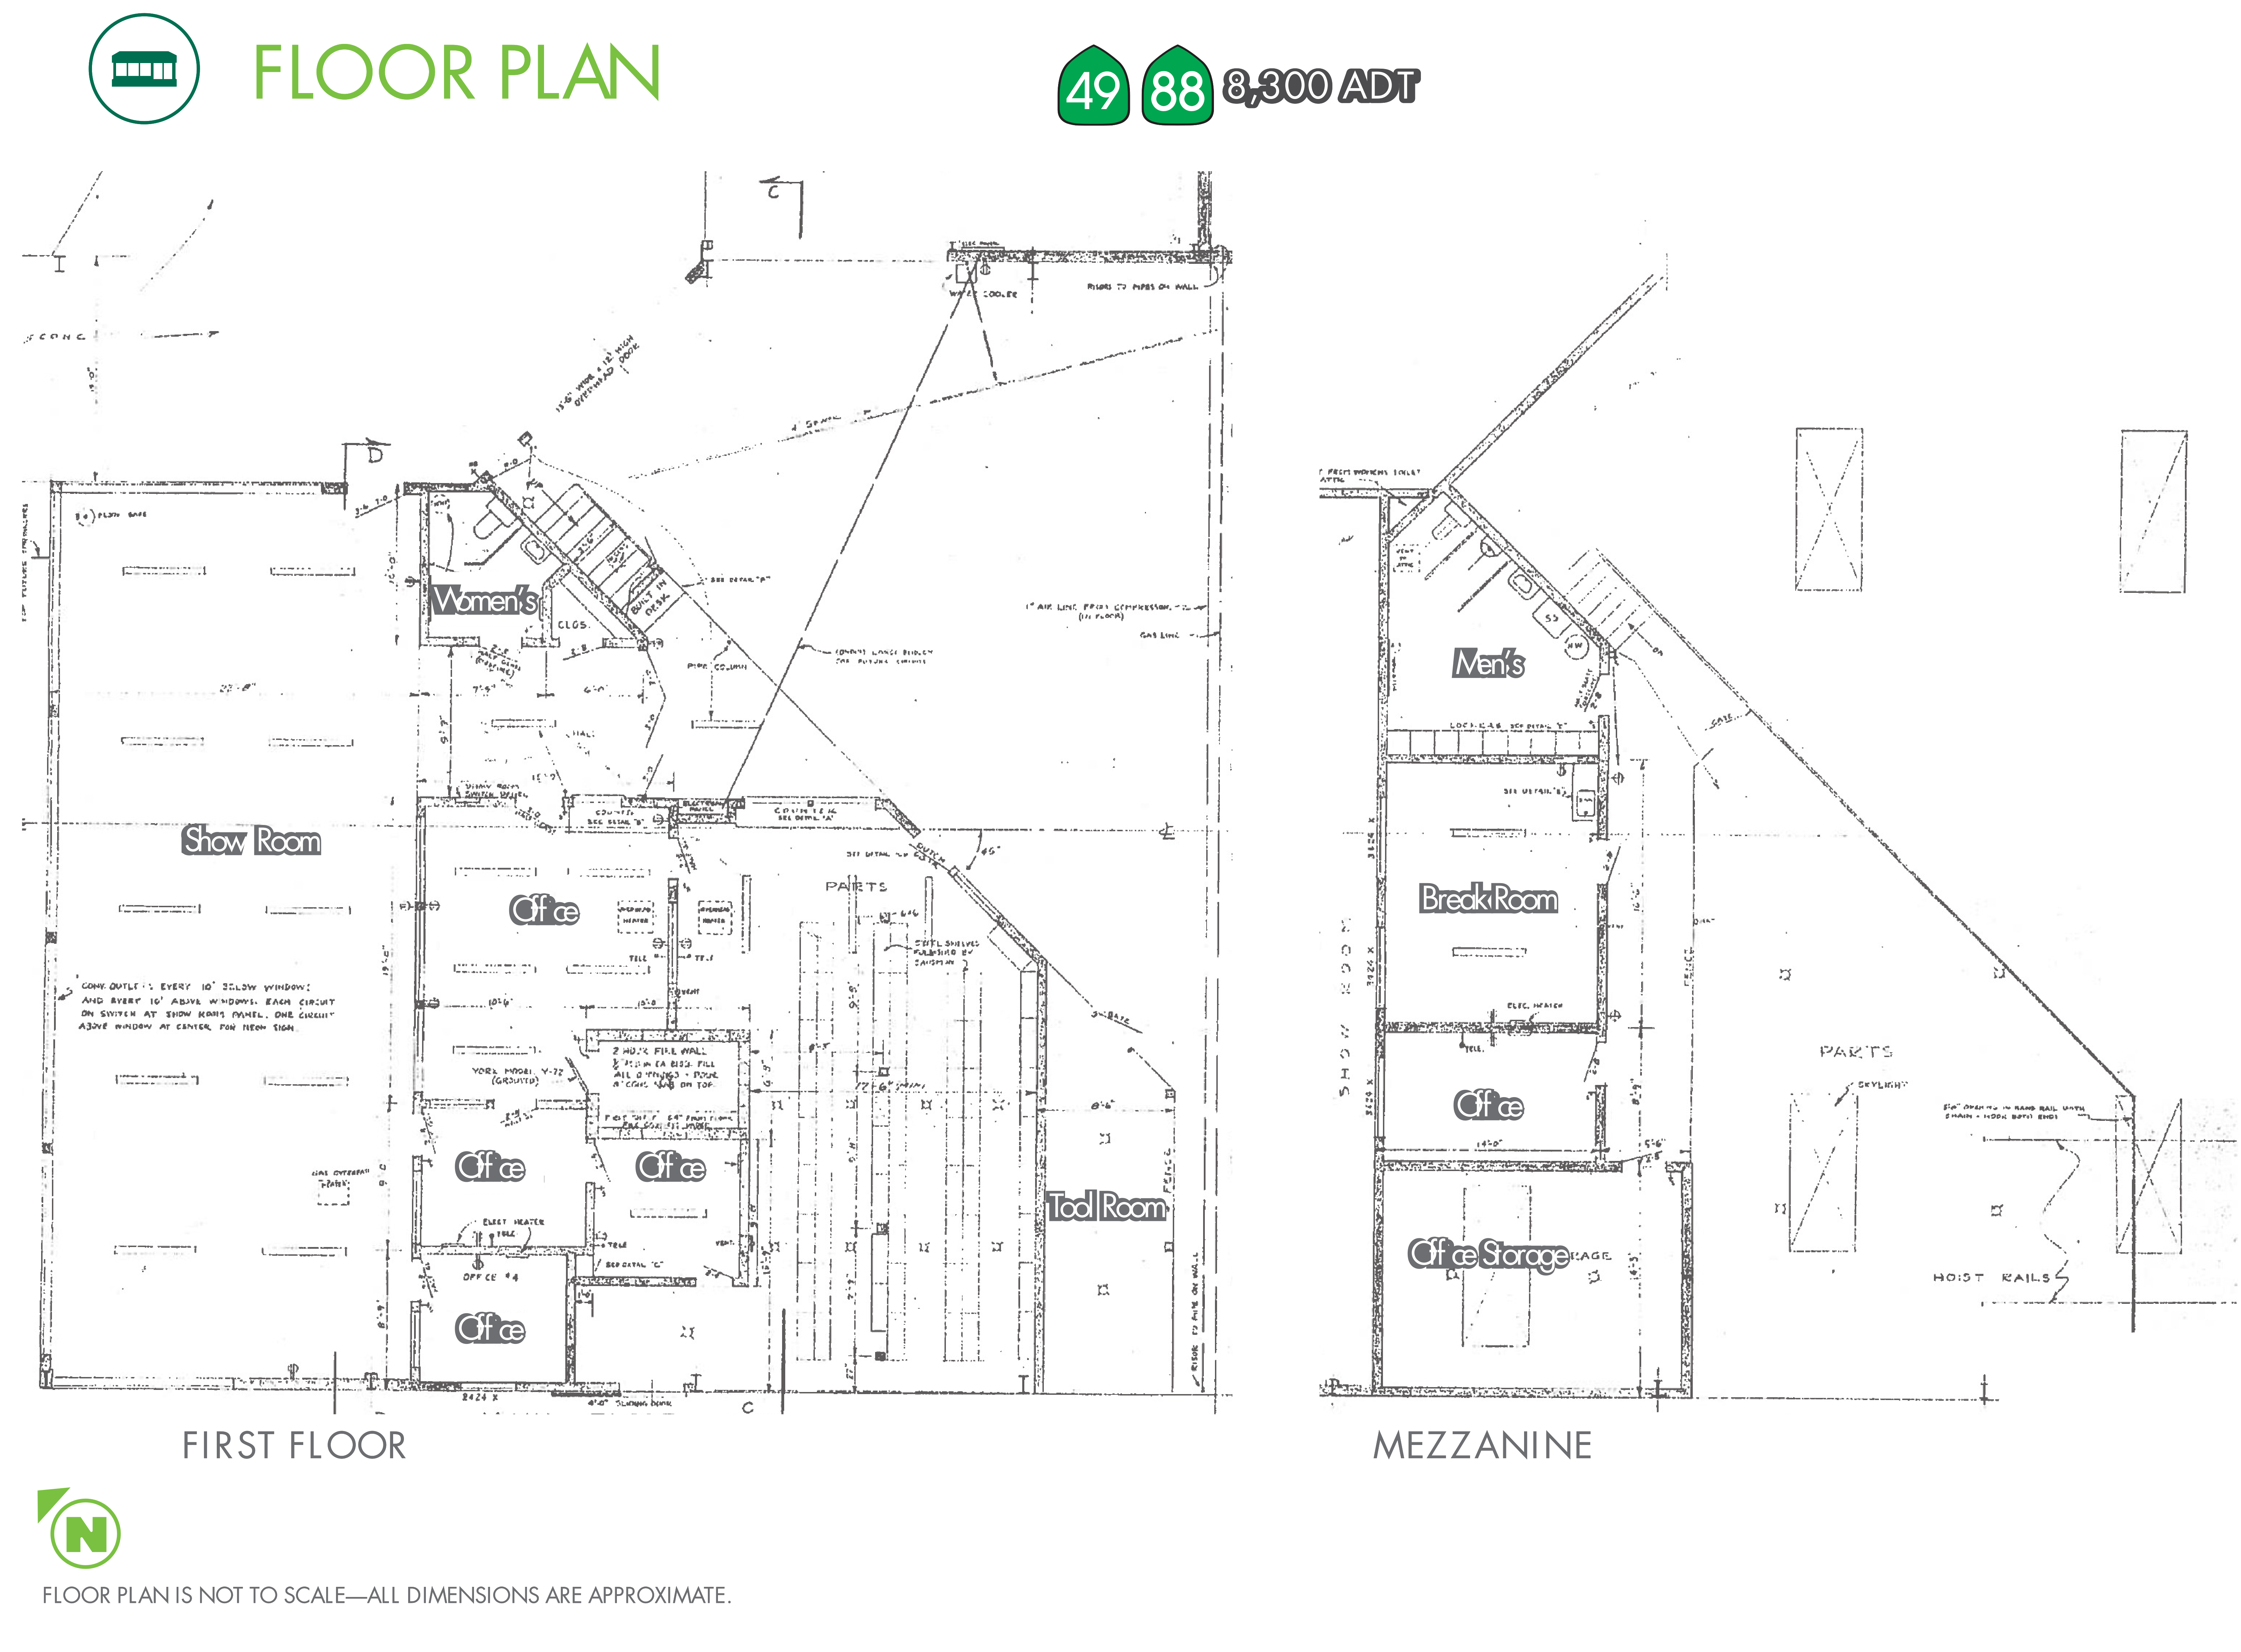 Freestanding Retail Automotive Building: site plan